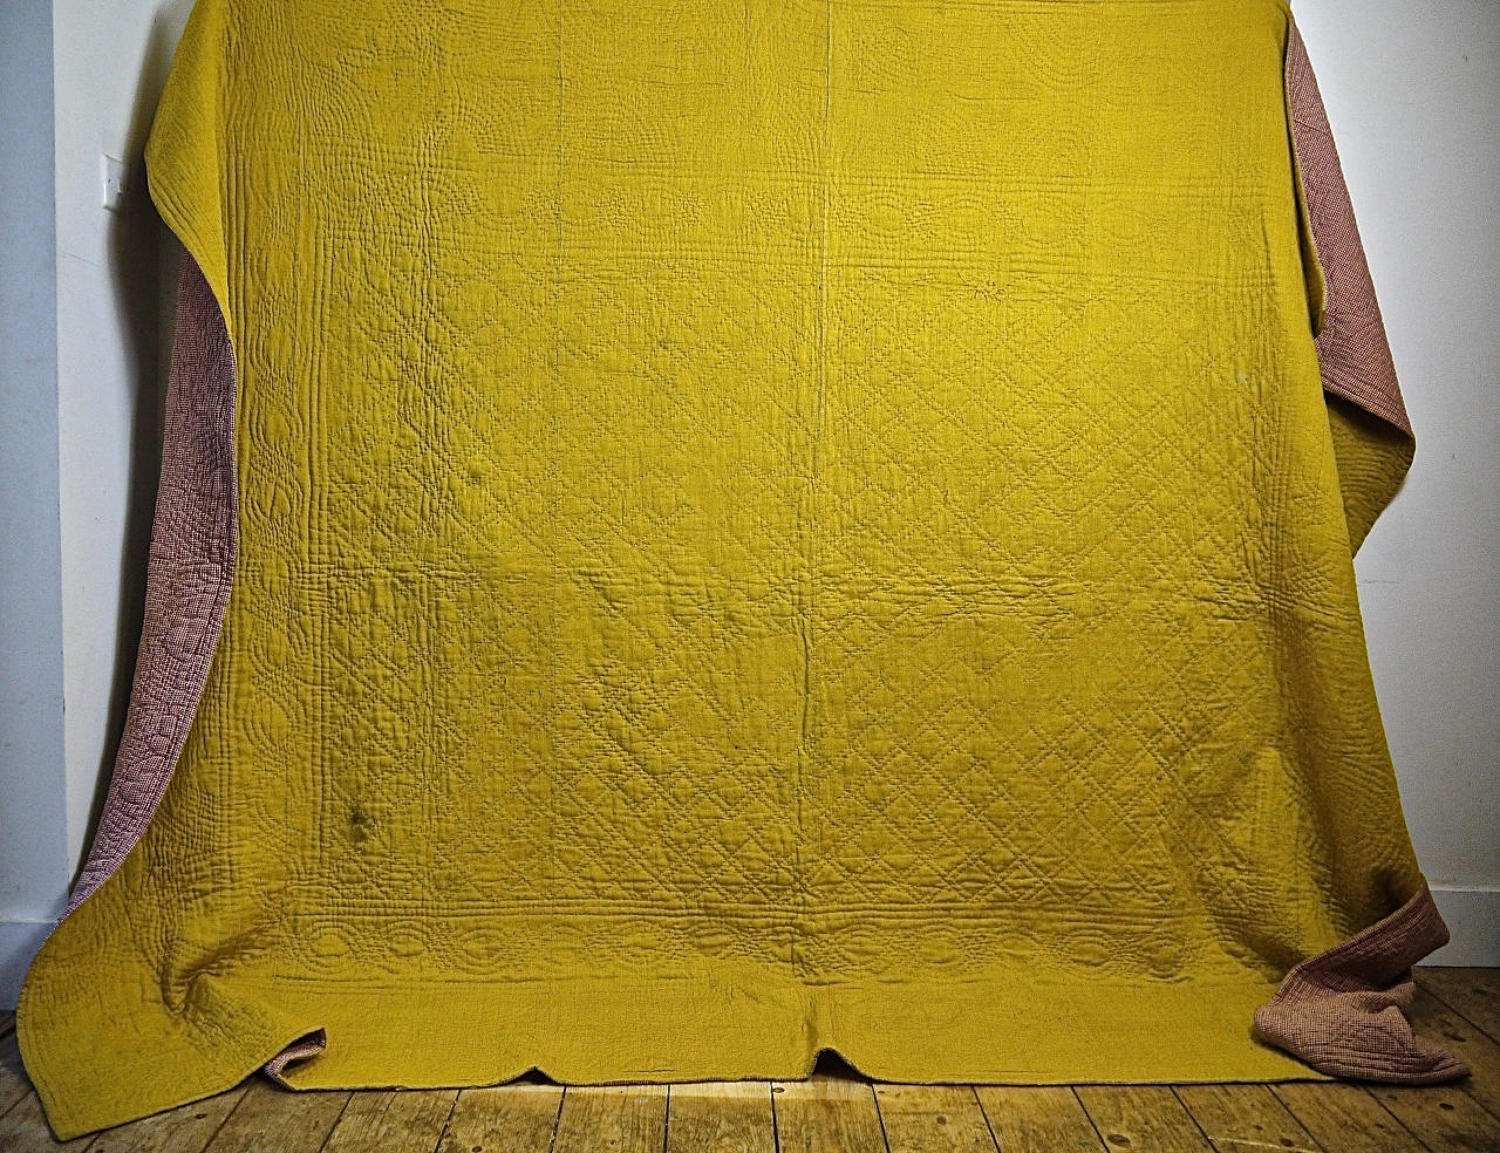 Saffron Yellow Silk Bourette de Soie Quilt French 19th Century